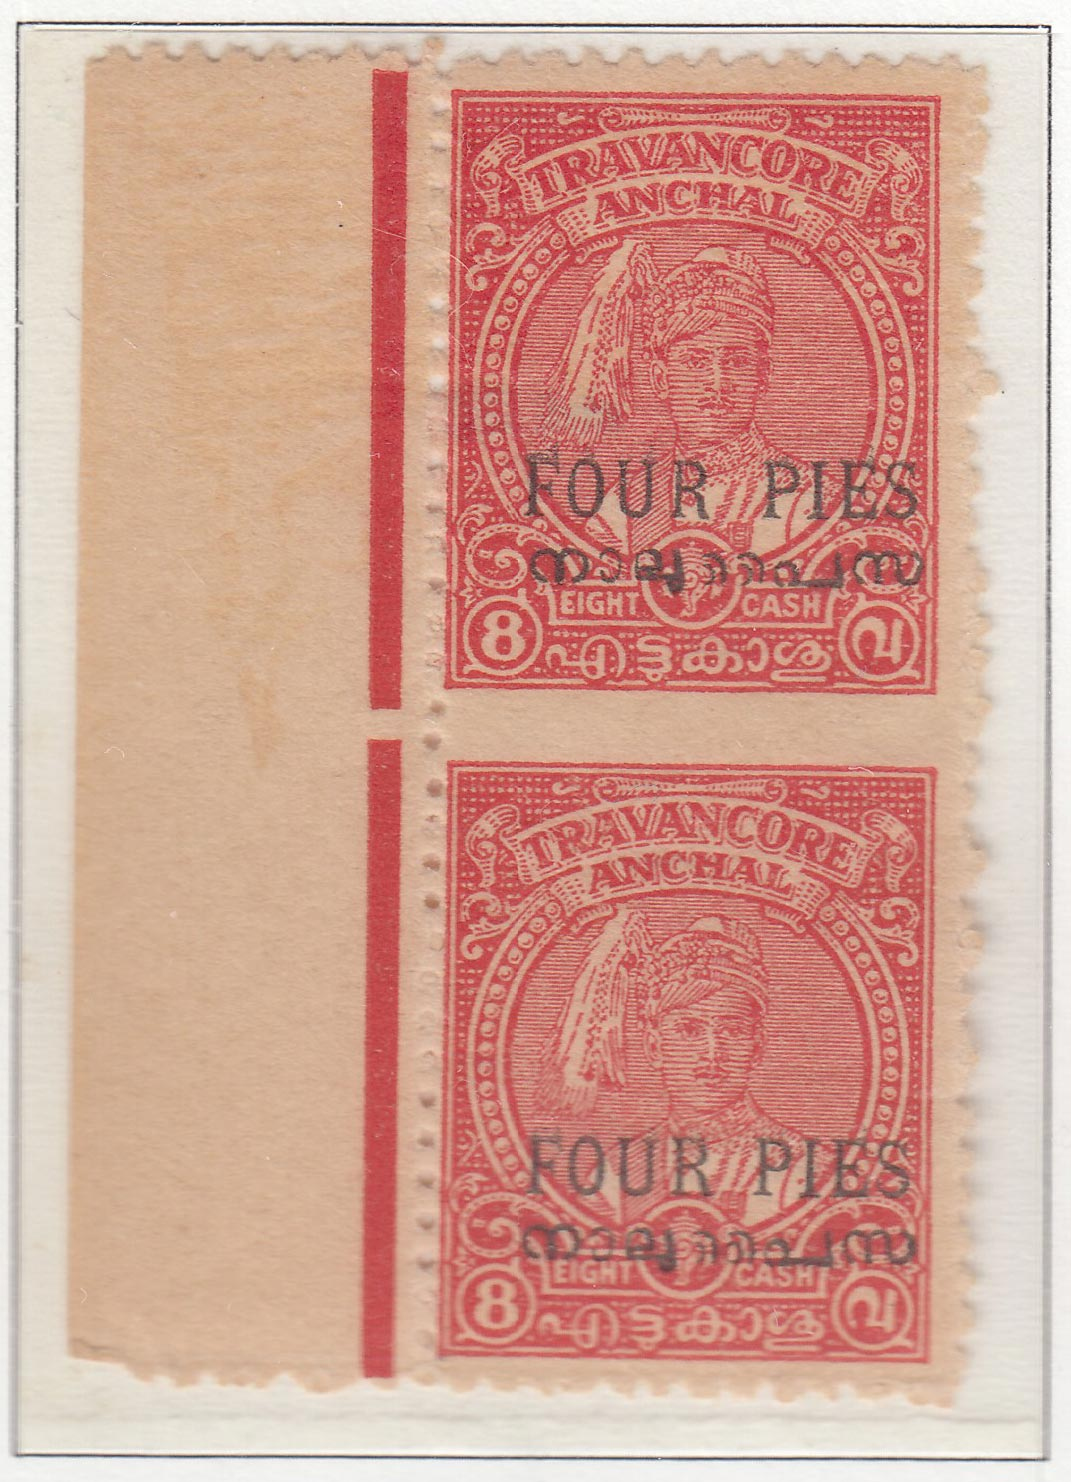 travancore-cochin-11-four-pies-on-eight-cash-perforated-twelve-vertical-pair-imperf